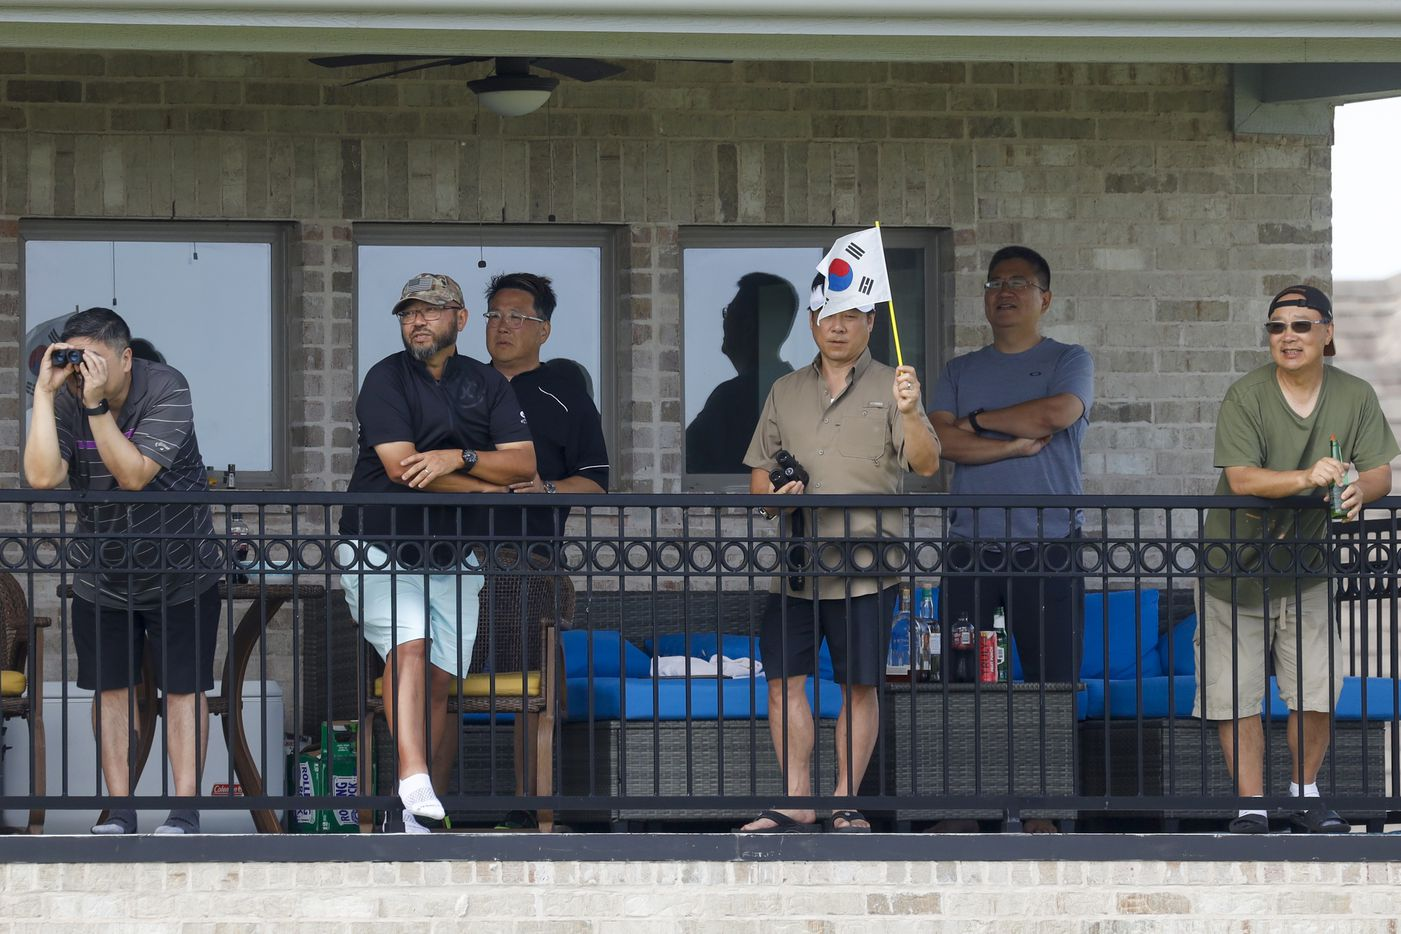 Fans watch action alongside the No. 2 green from a second floor balcony during the third round of the LPGA VOA Classic on Saturday, July 3, 2021, in The Colony, Texas. (Elias Valverde II/The Dallas Morning News)